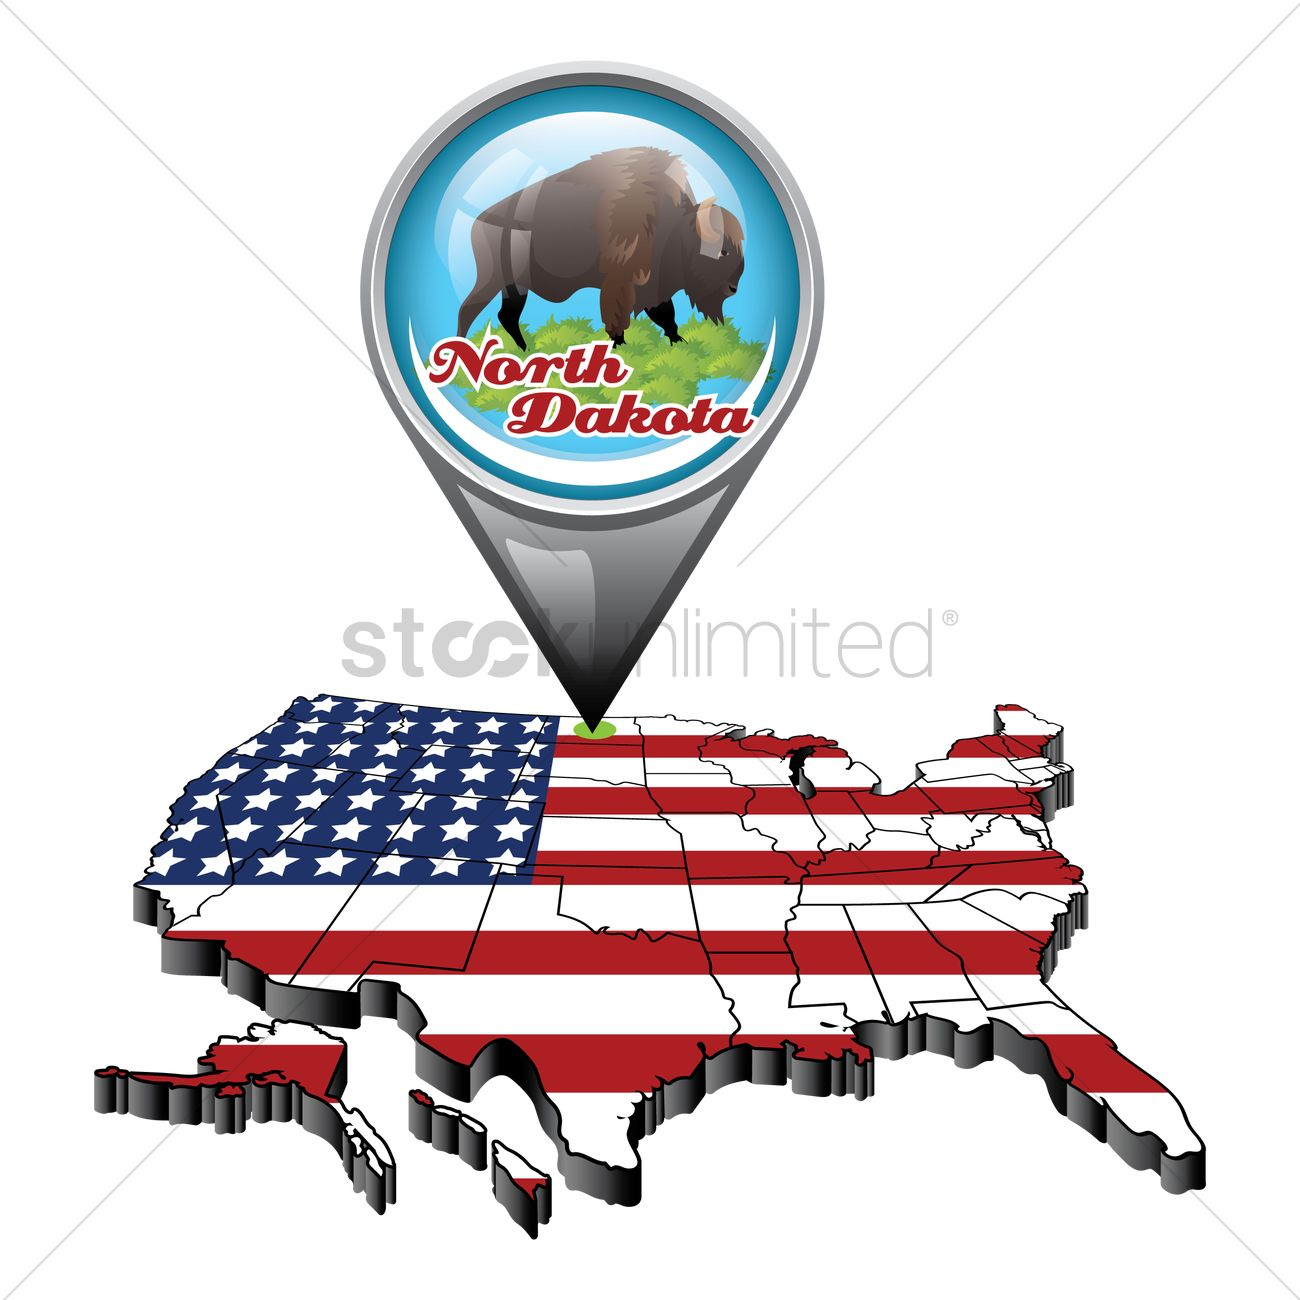 Us map with pin showing north dakota state Vector Image - 1553427 ...